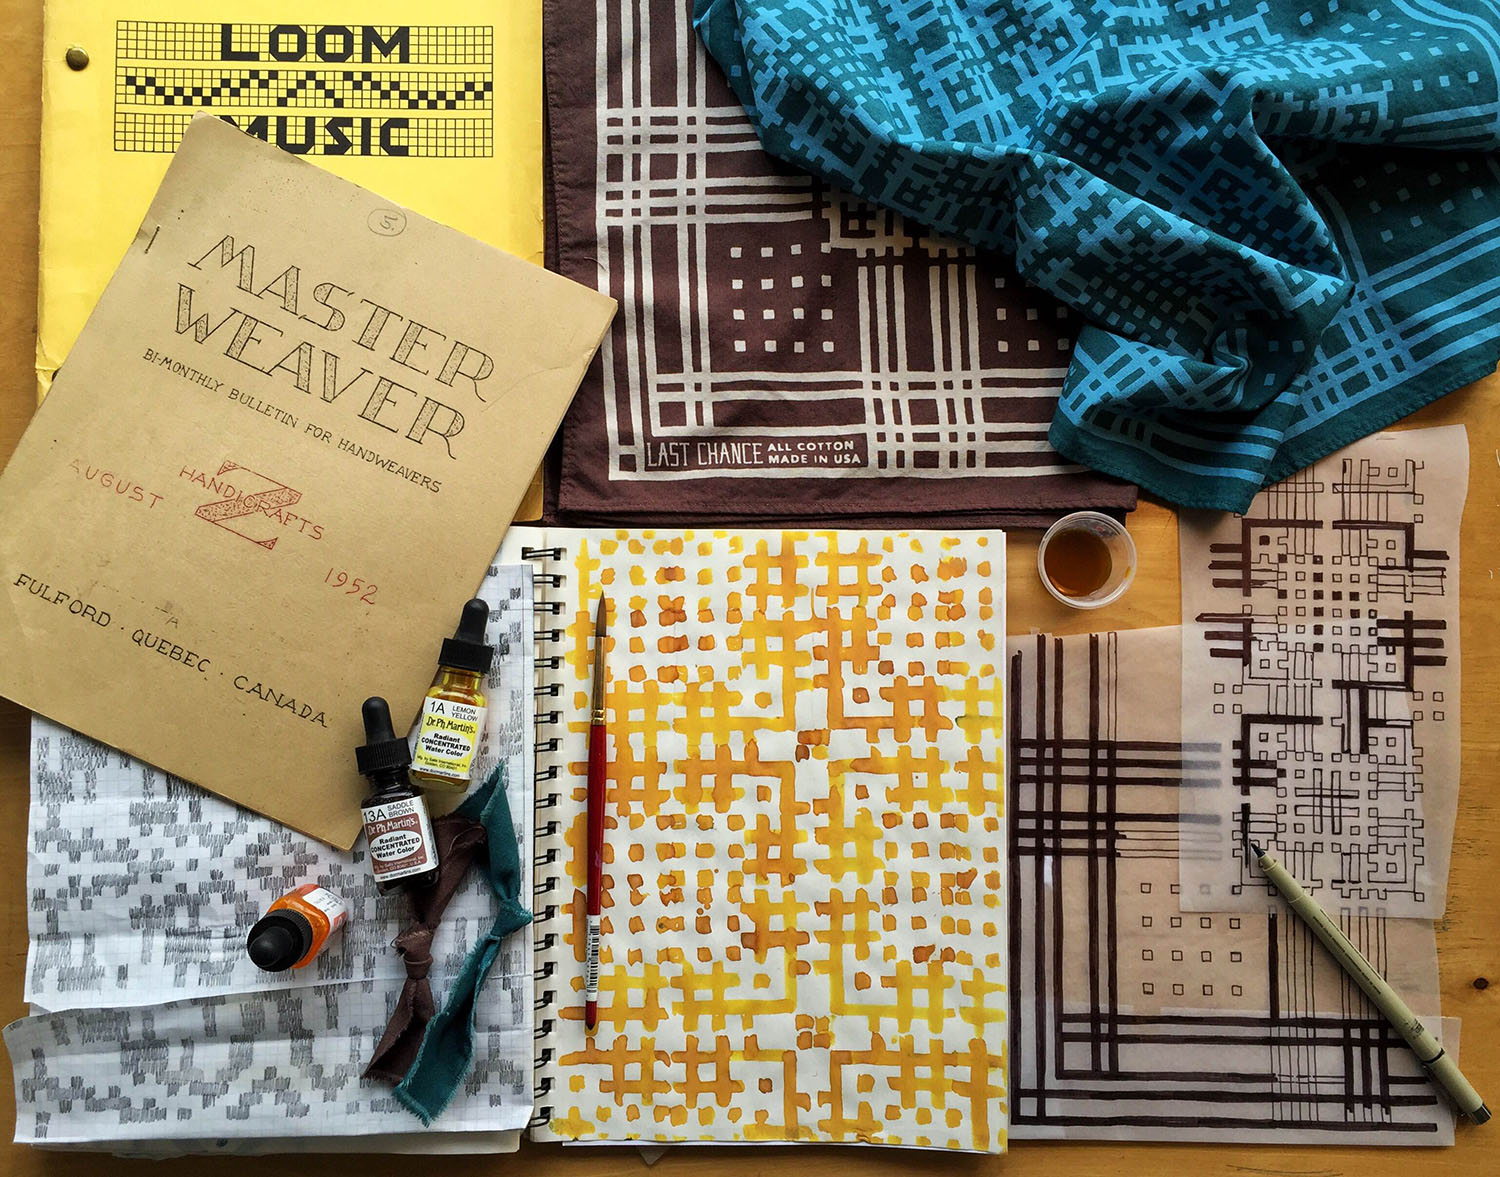 Draft-Danna print was inspired by hand drawn drafts of early American overshot weaving patterns